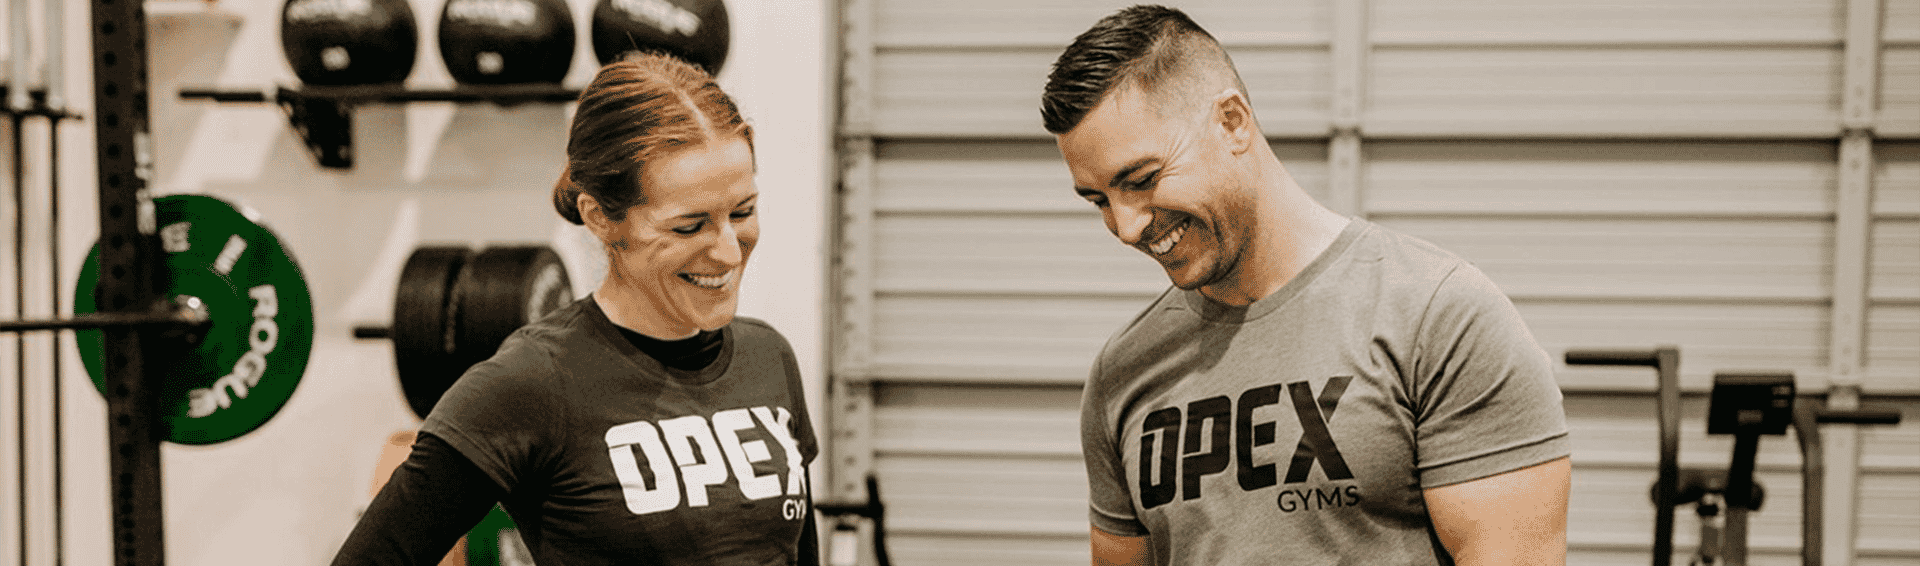 Personal Training vs. An OPEX Gym